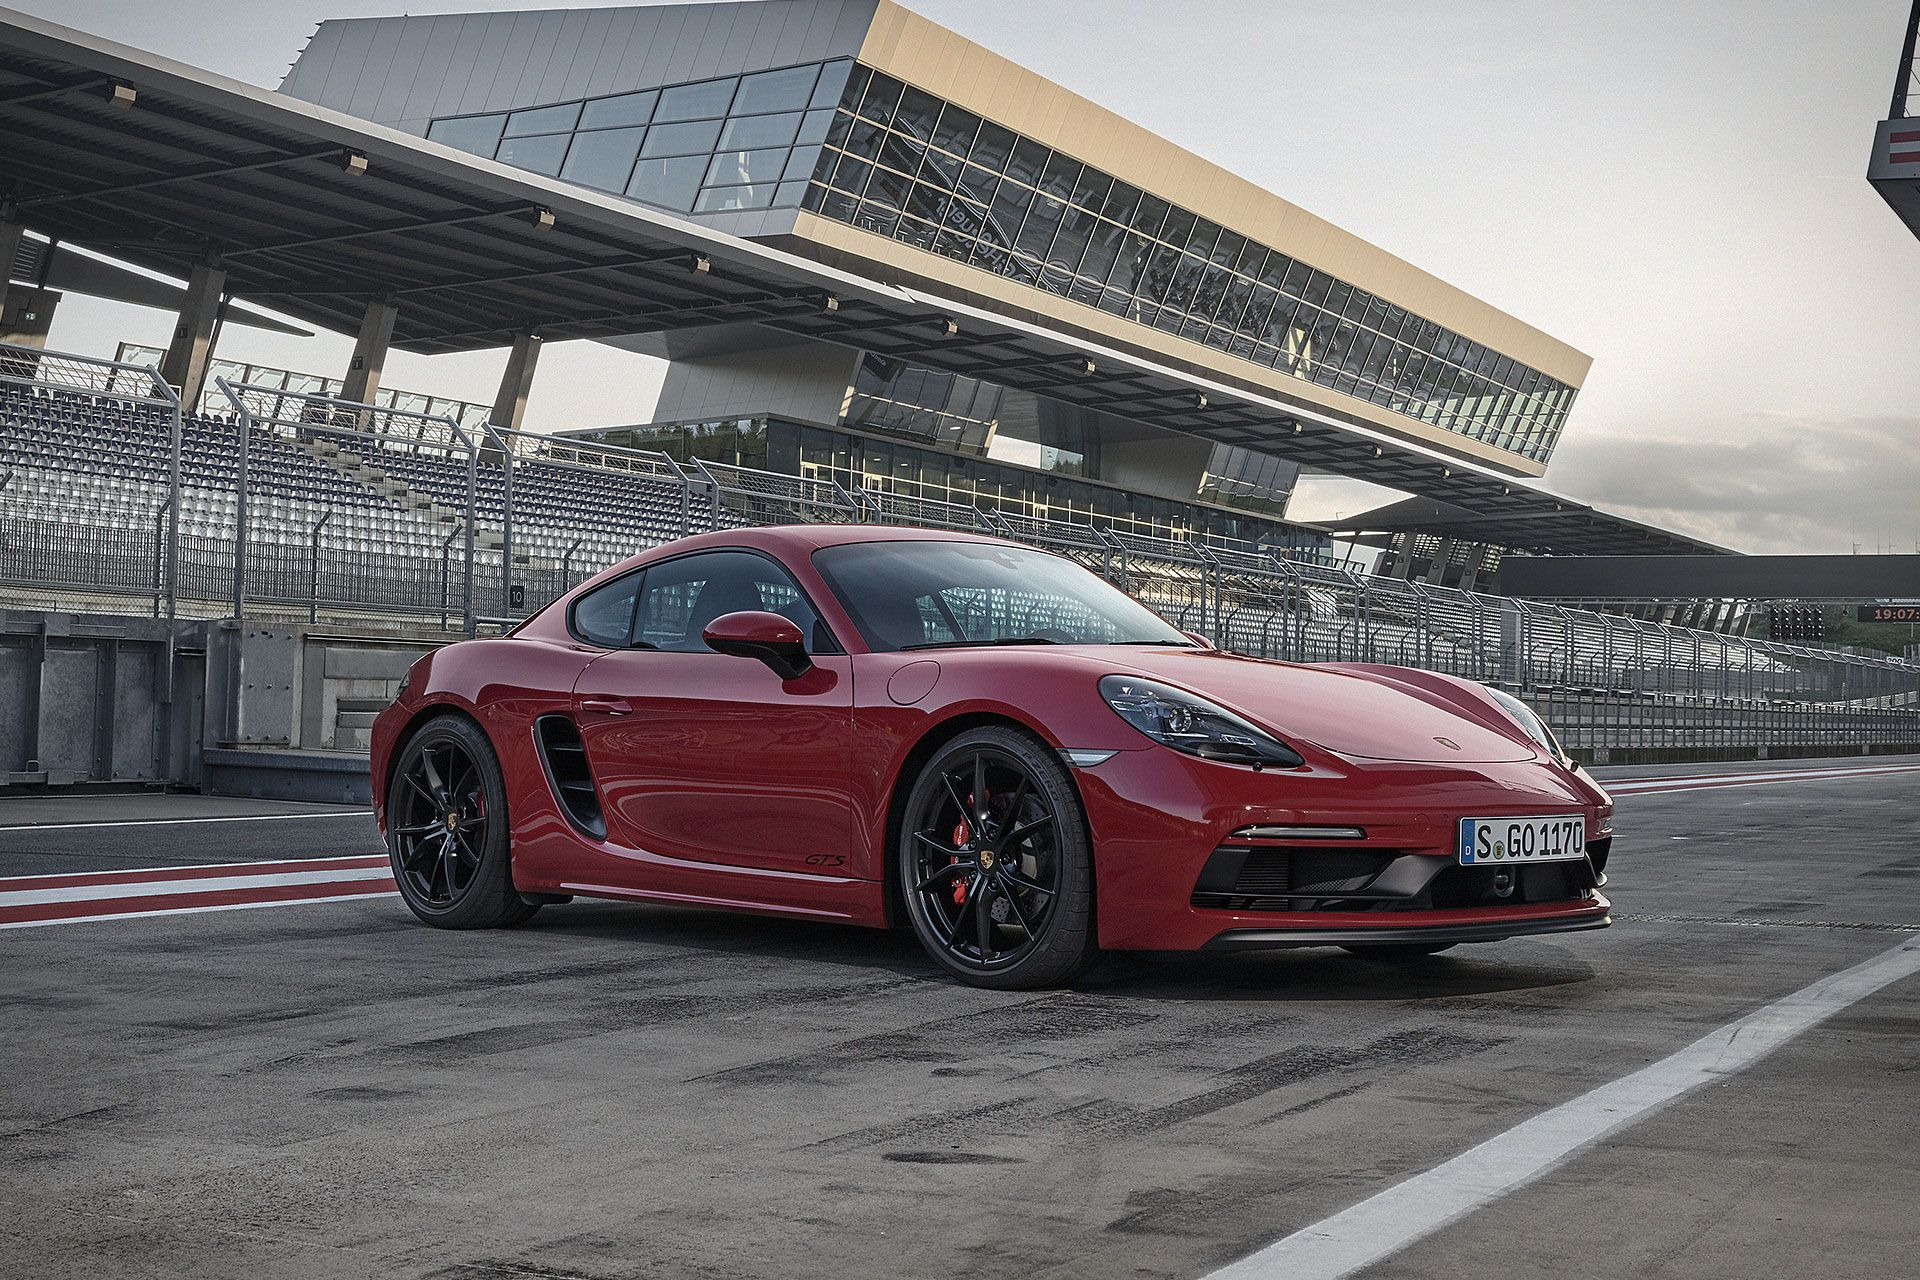 Arguably The Best Car In Porsche S Current Lineup The Mid Engined 718 Cayman And Boxster Have Gotten Porsche 718 Cayman Porsche 718 Cayman Gts Porsche 718 Gts